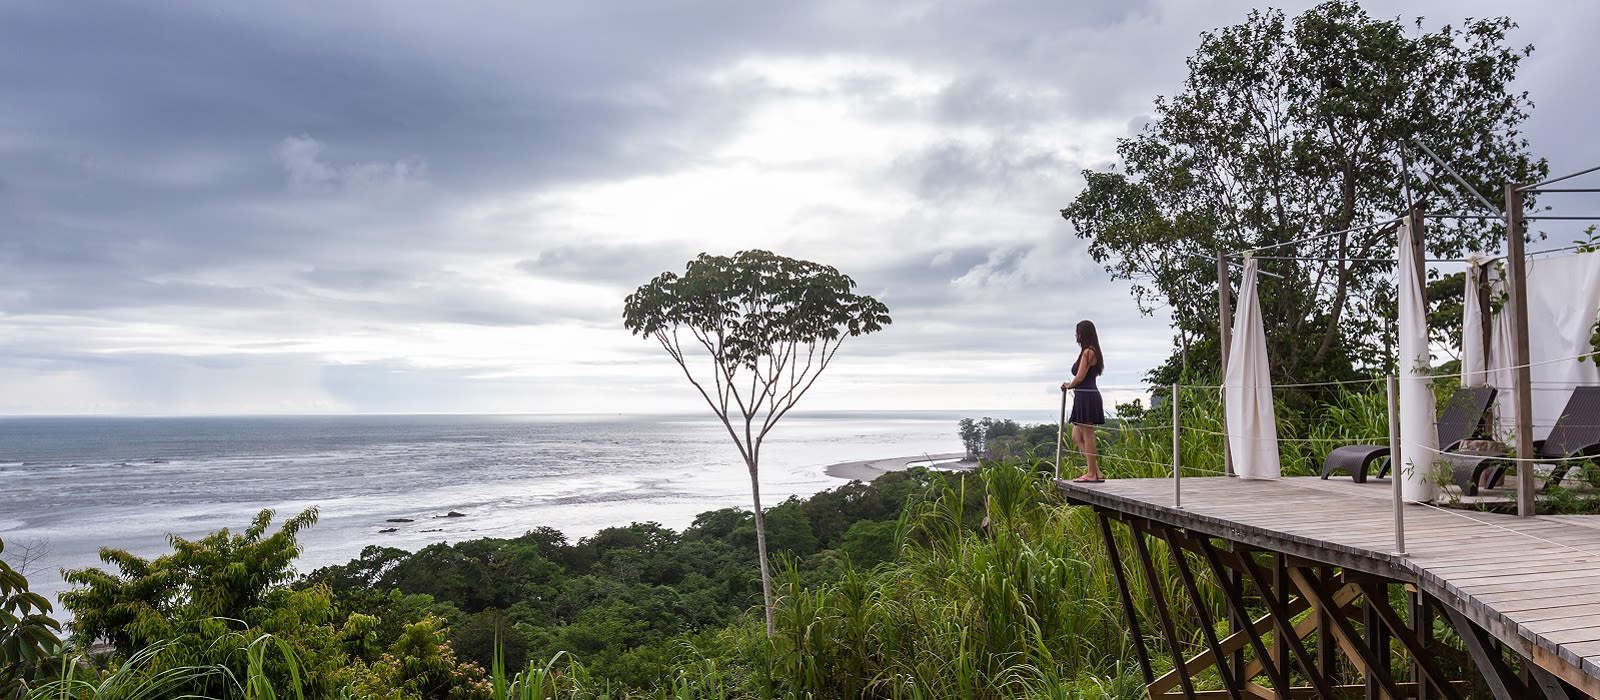 Costa Rica: Luxus in der Wildnis Urlaub 1